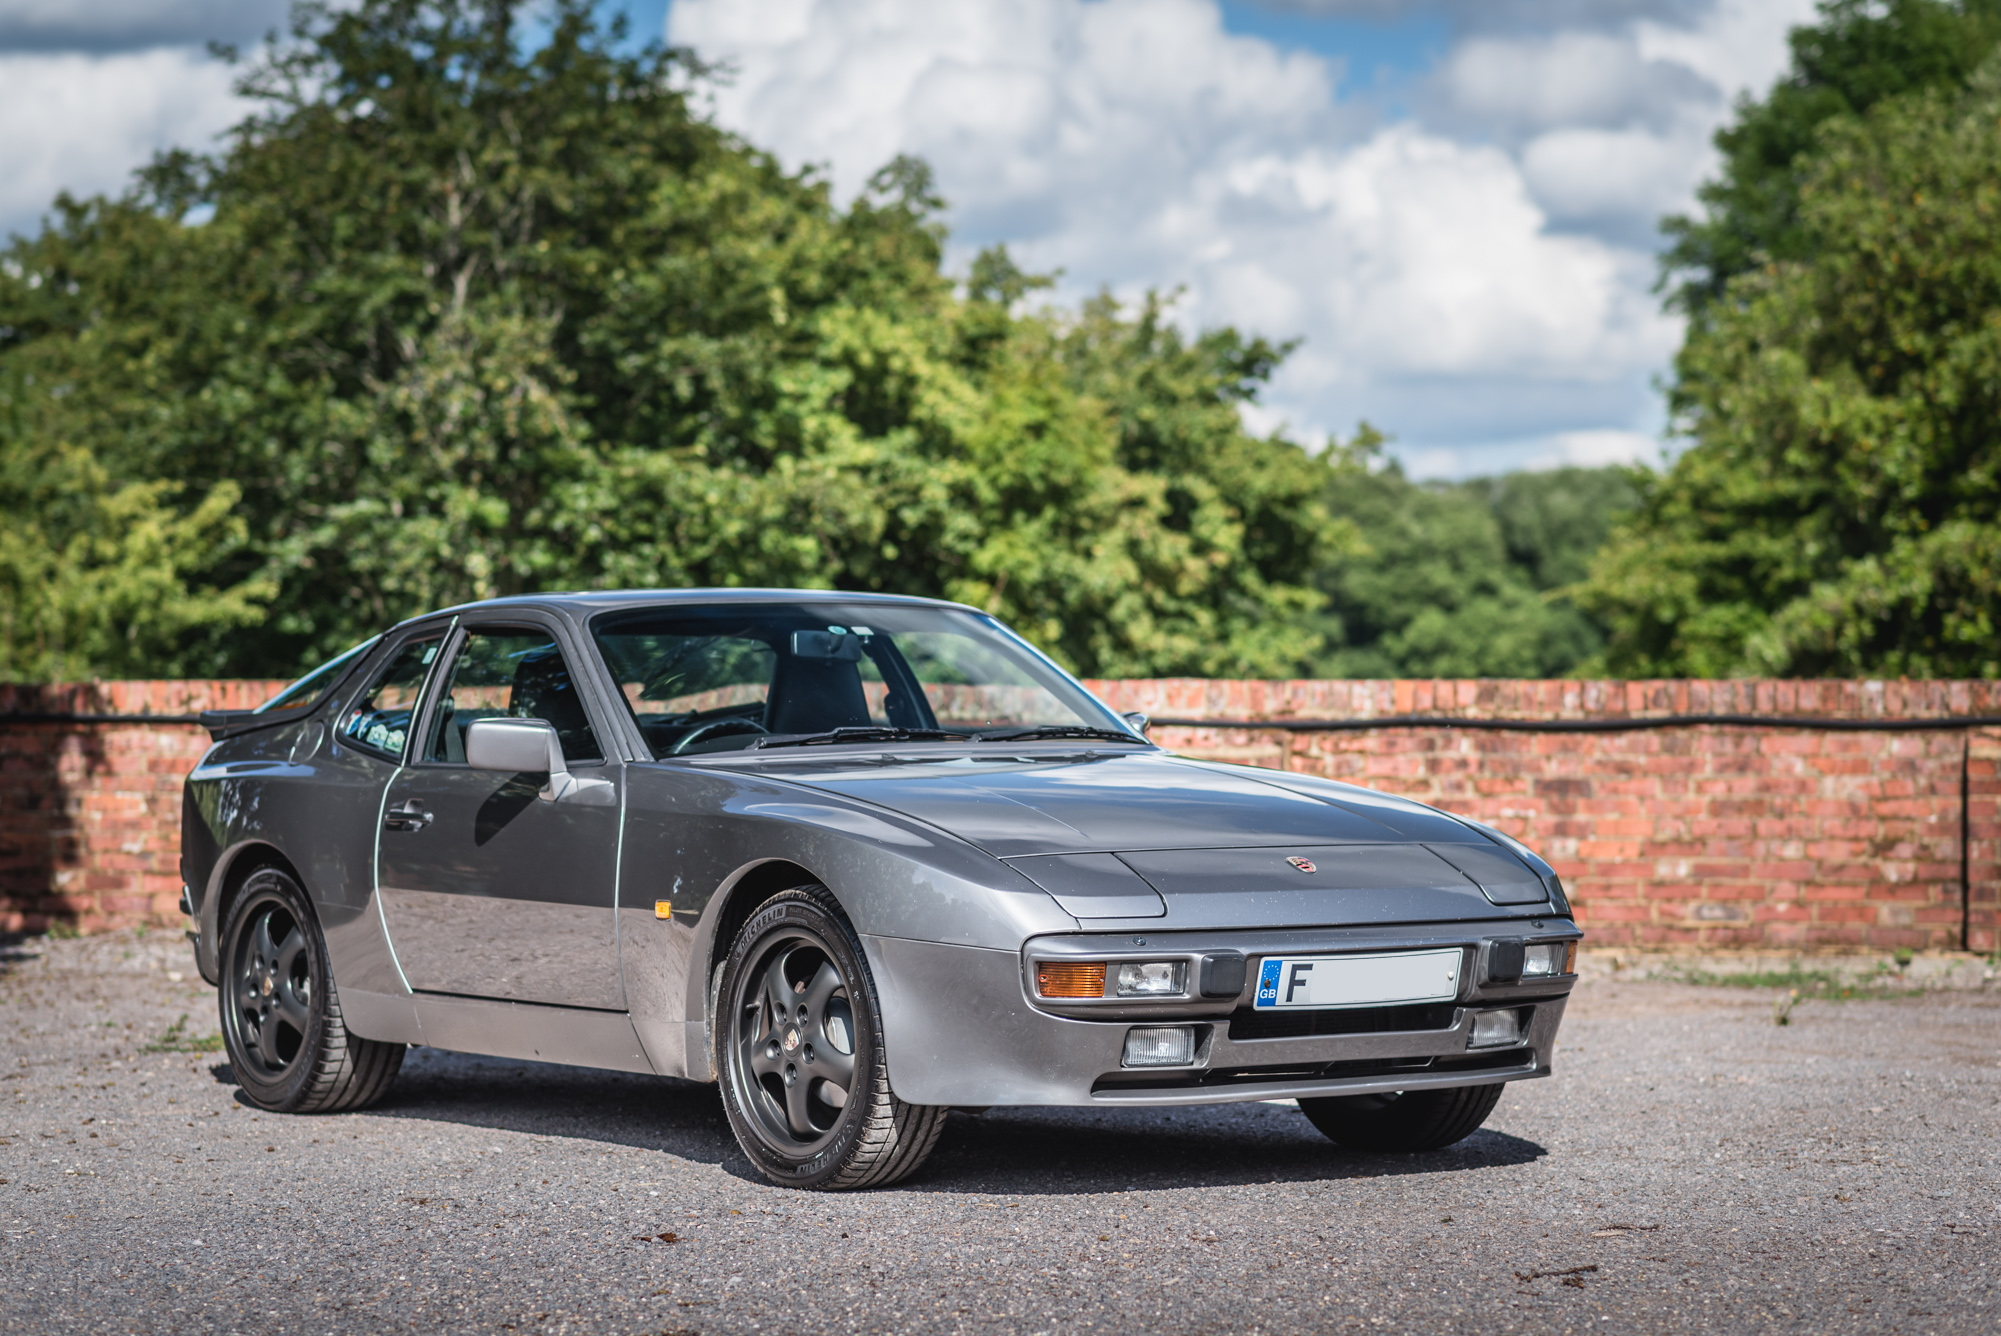 Porsche 944 Coupé Buying Guide (1982 – 1992)